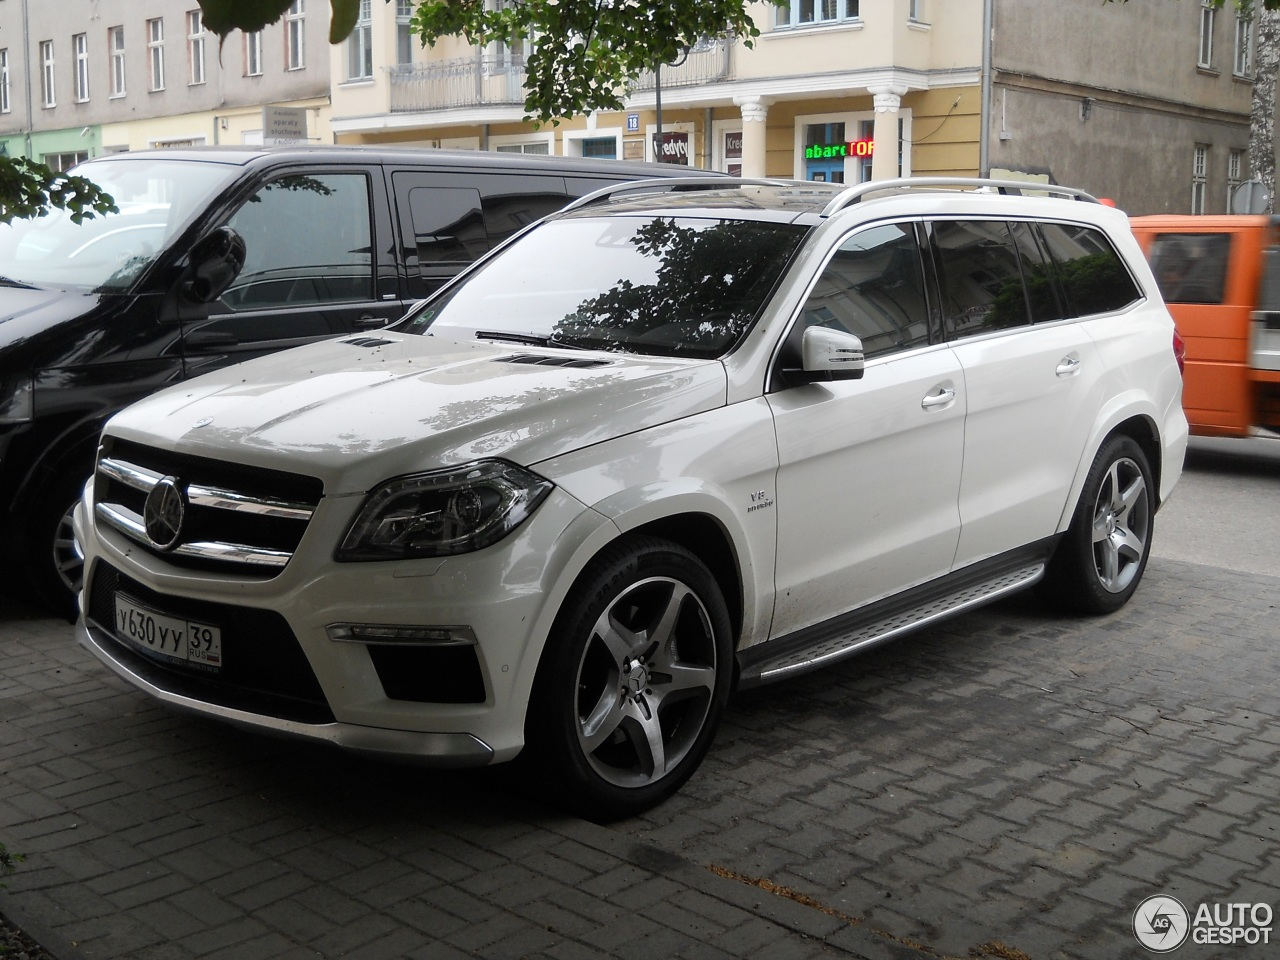 Mercedes benz gl 63 amg x166 31 may 2013 autogespot for Mercedes benz gls amg